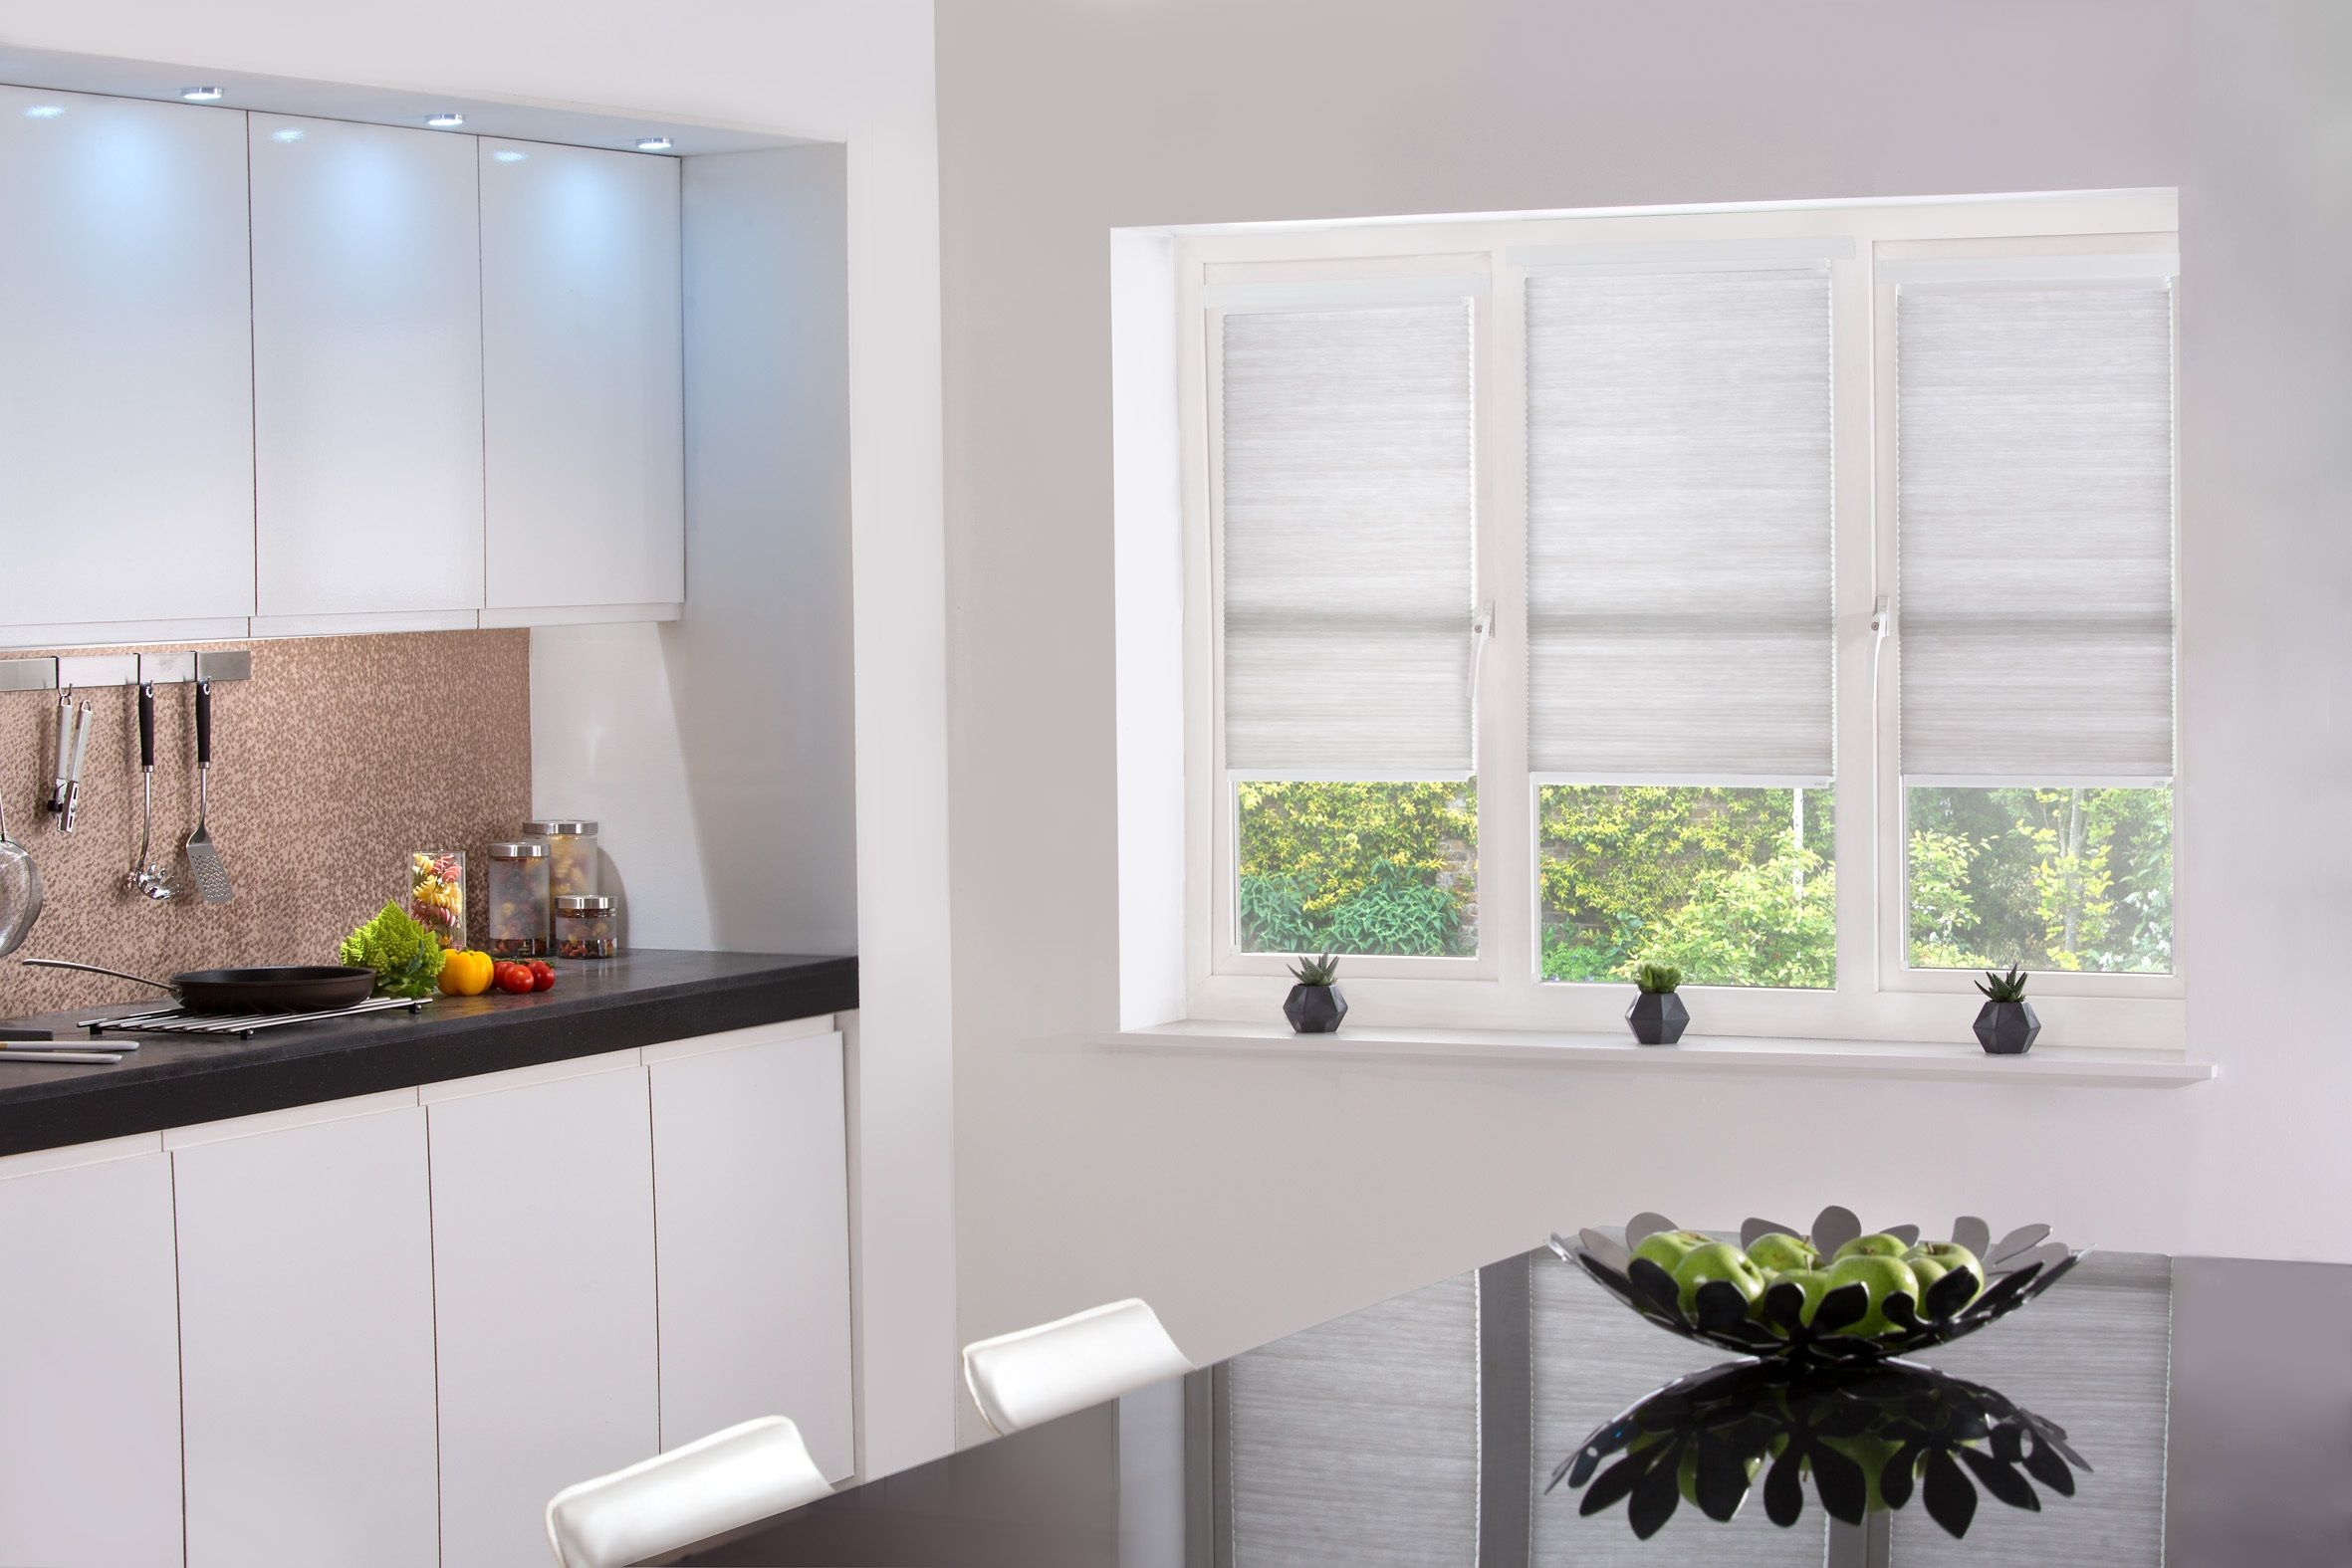 Hive Silkweave Ash blinds from Style Studio. Pleated blinds